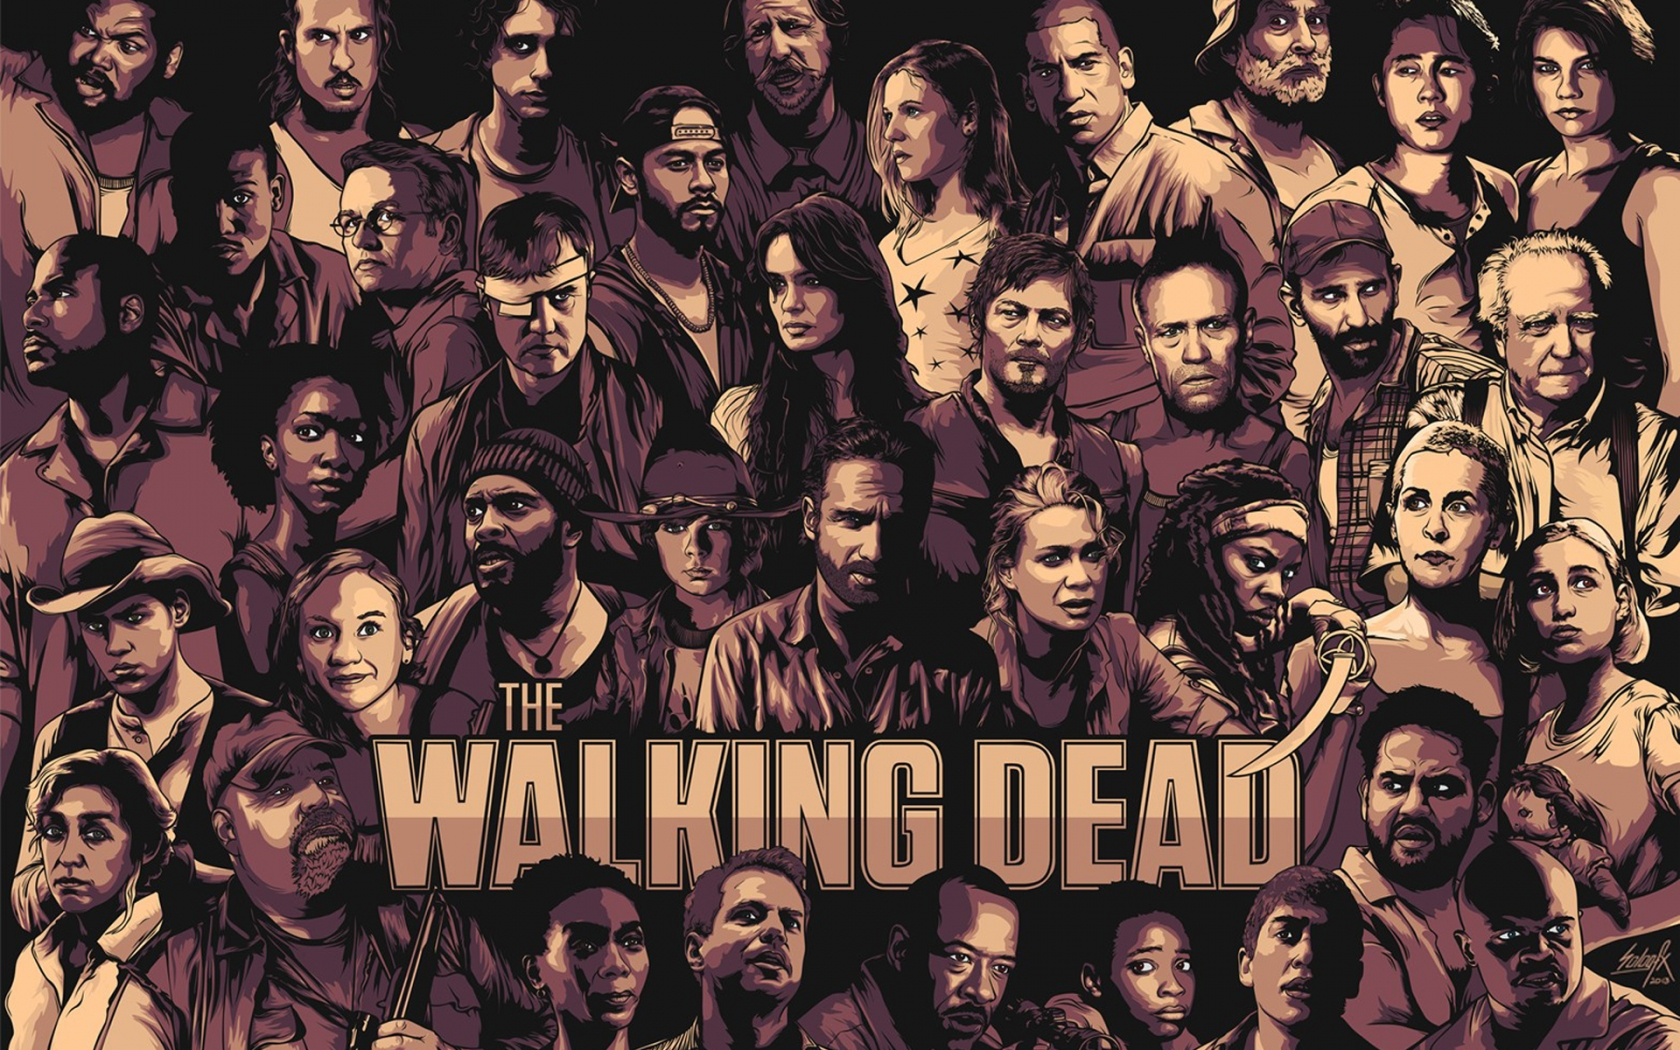 The Walking Dead Cool Poster for 1680 x 1050 widescreen resolution